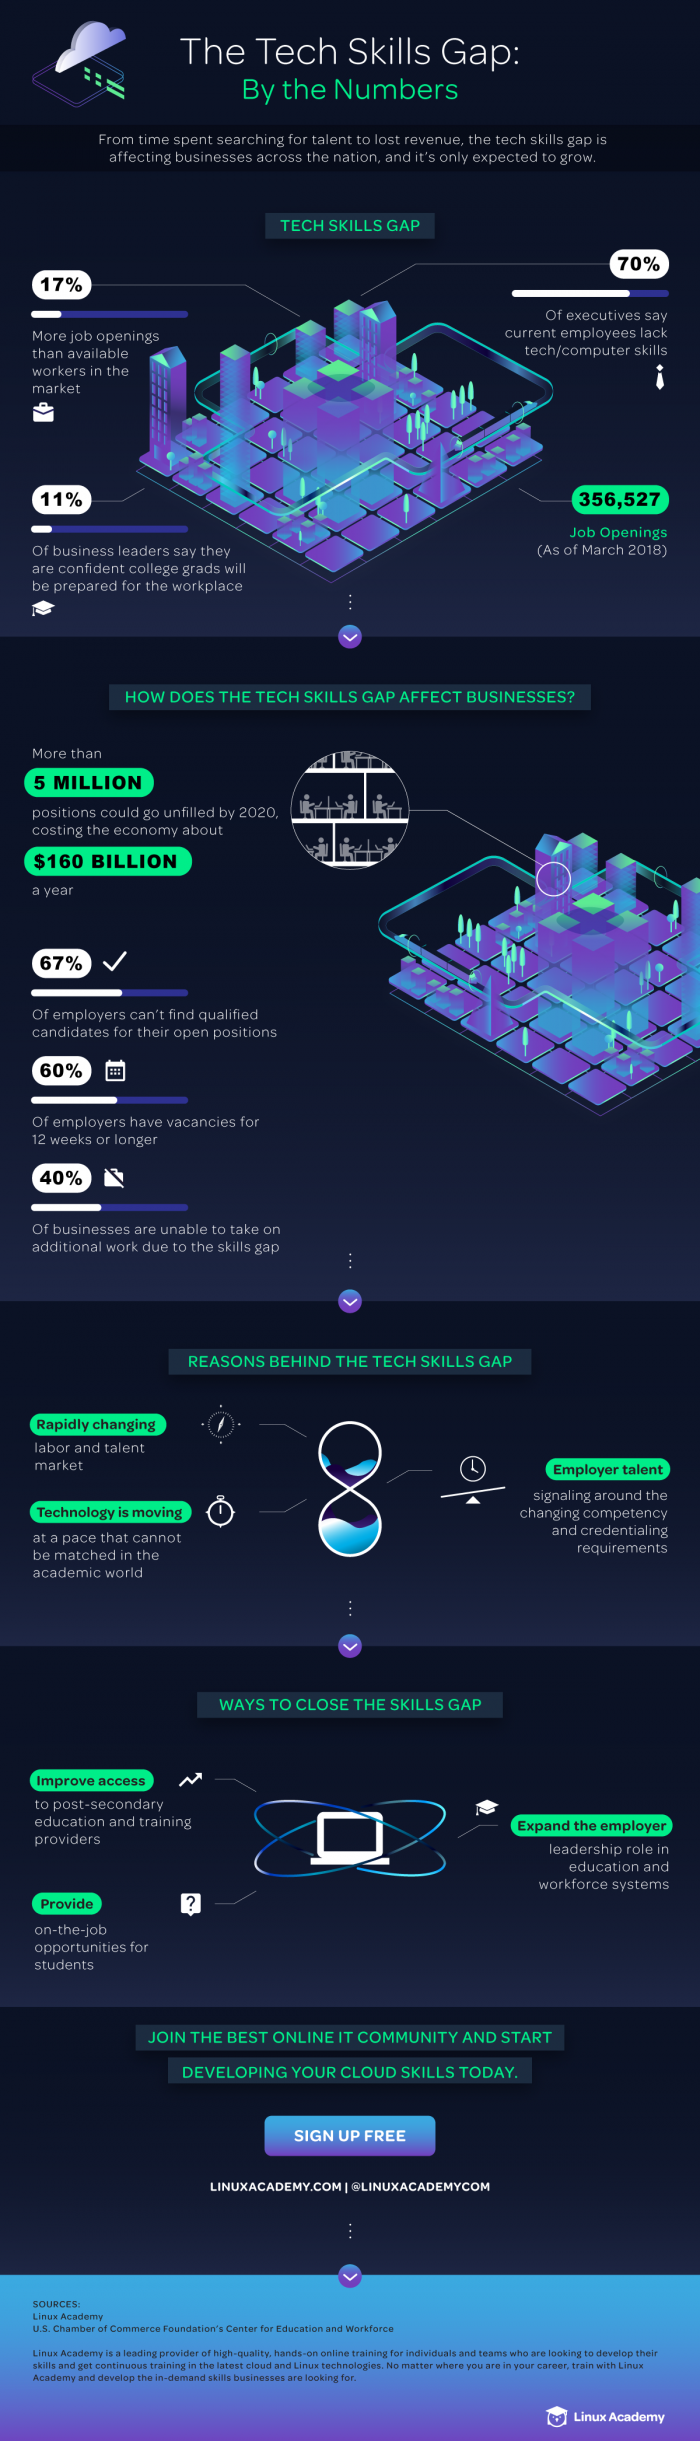 The Tech Skills Gap: Reasons Why & How to Solve It #infographic